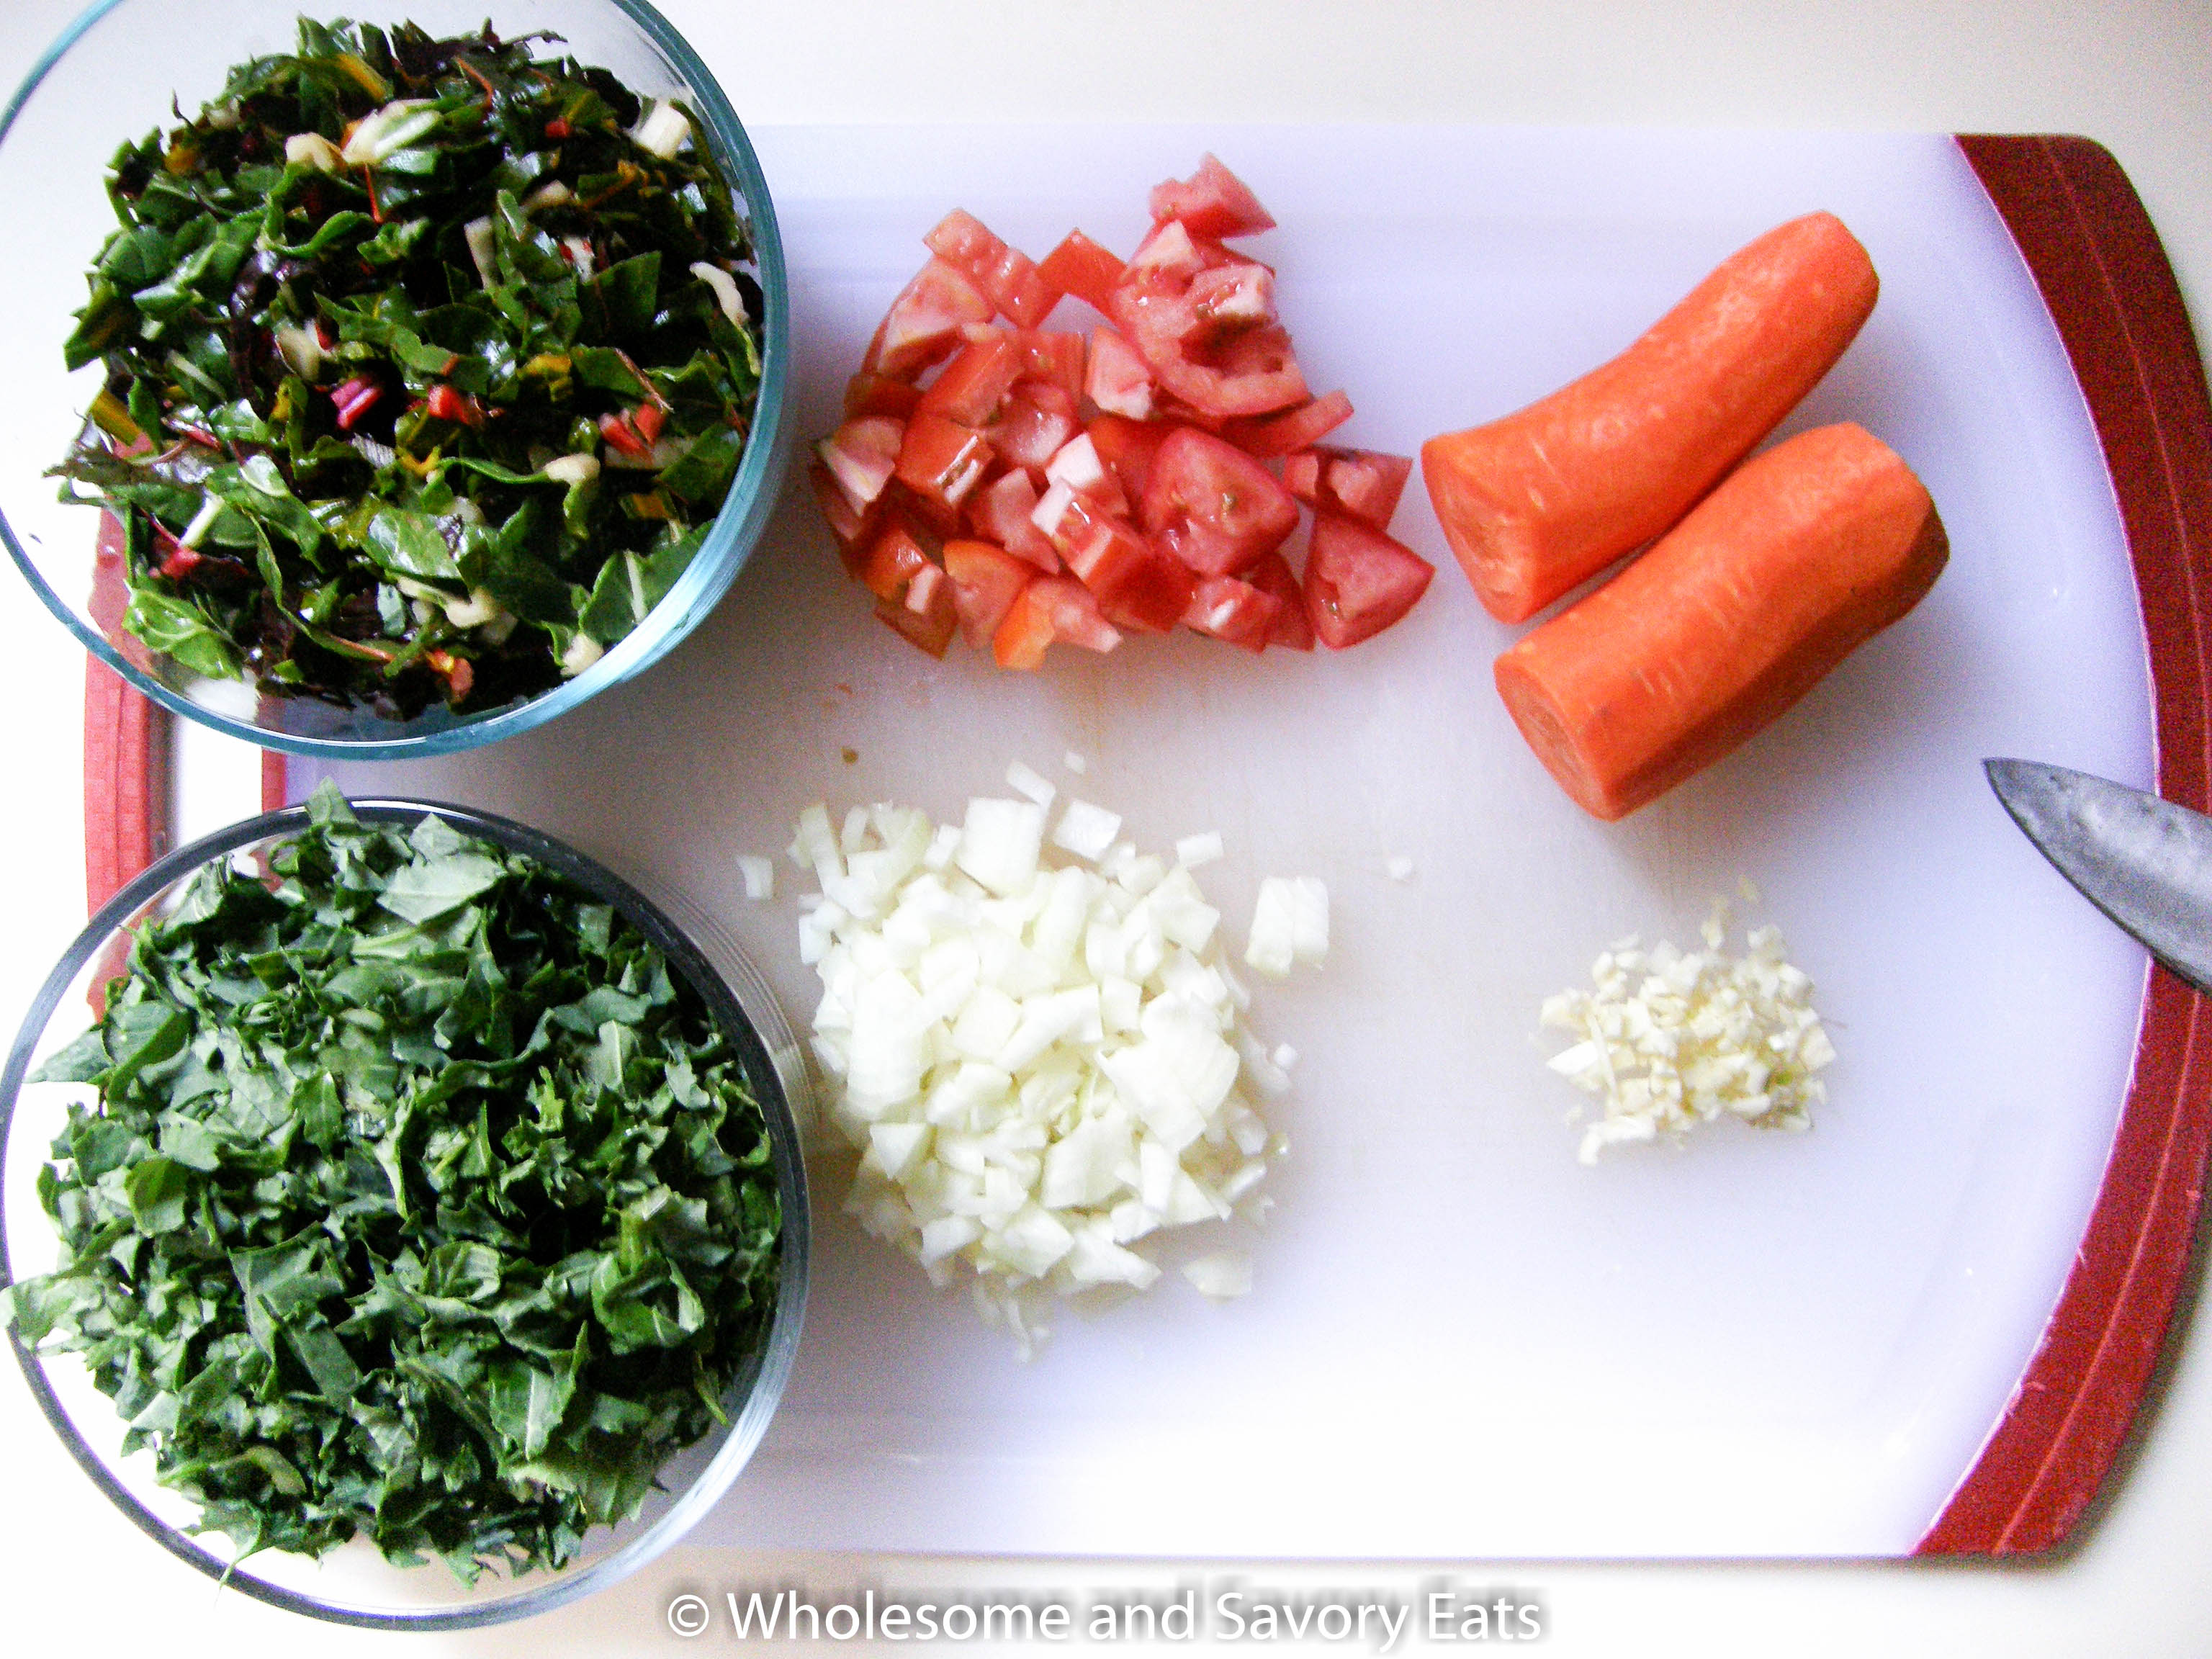 Meatless Monday: Kale, Swiss Chard and Kidney Bean Soup